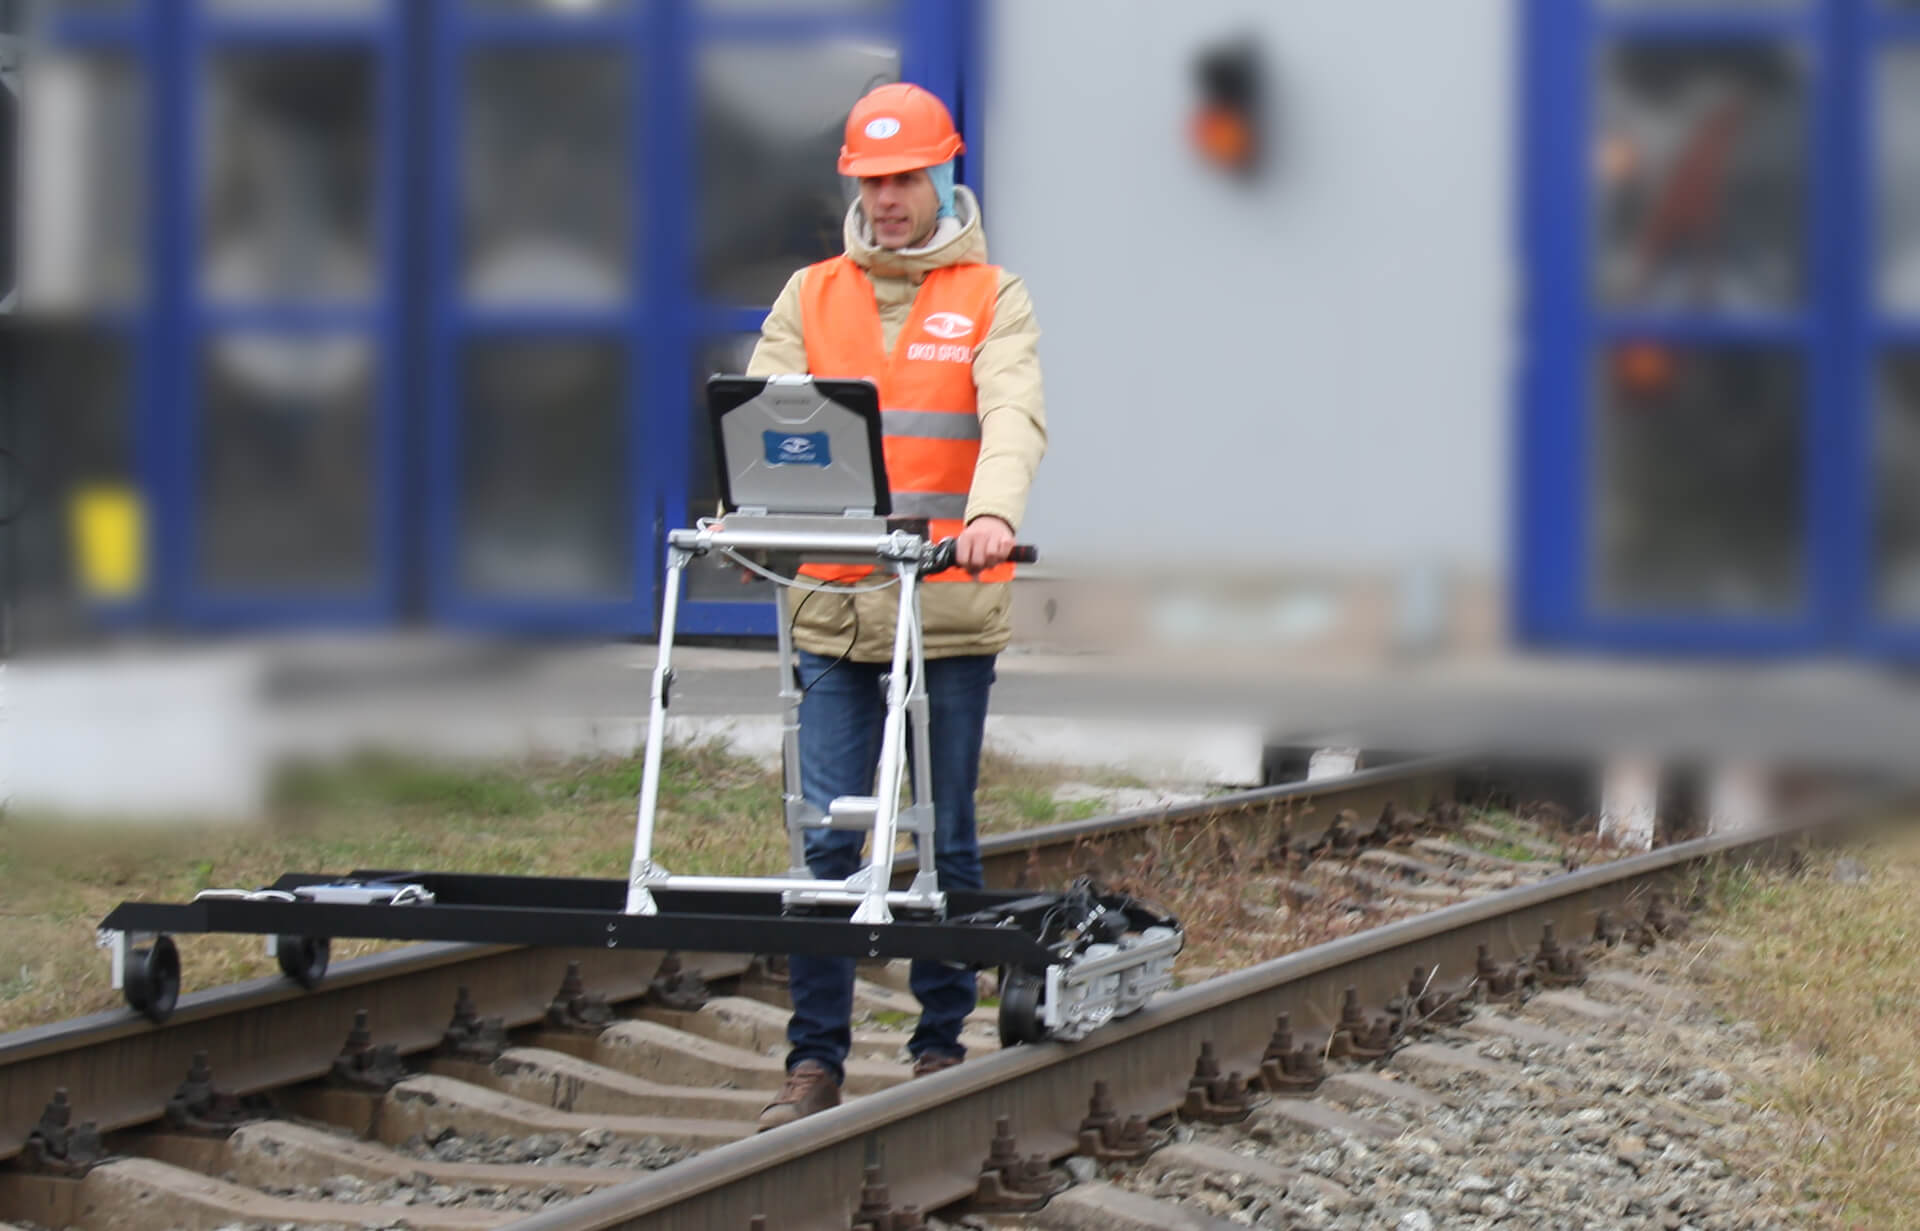 ETS2-77 eddy current flaw detector application on the railroad track